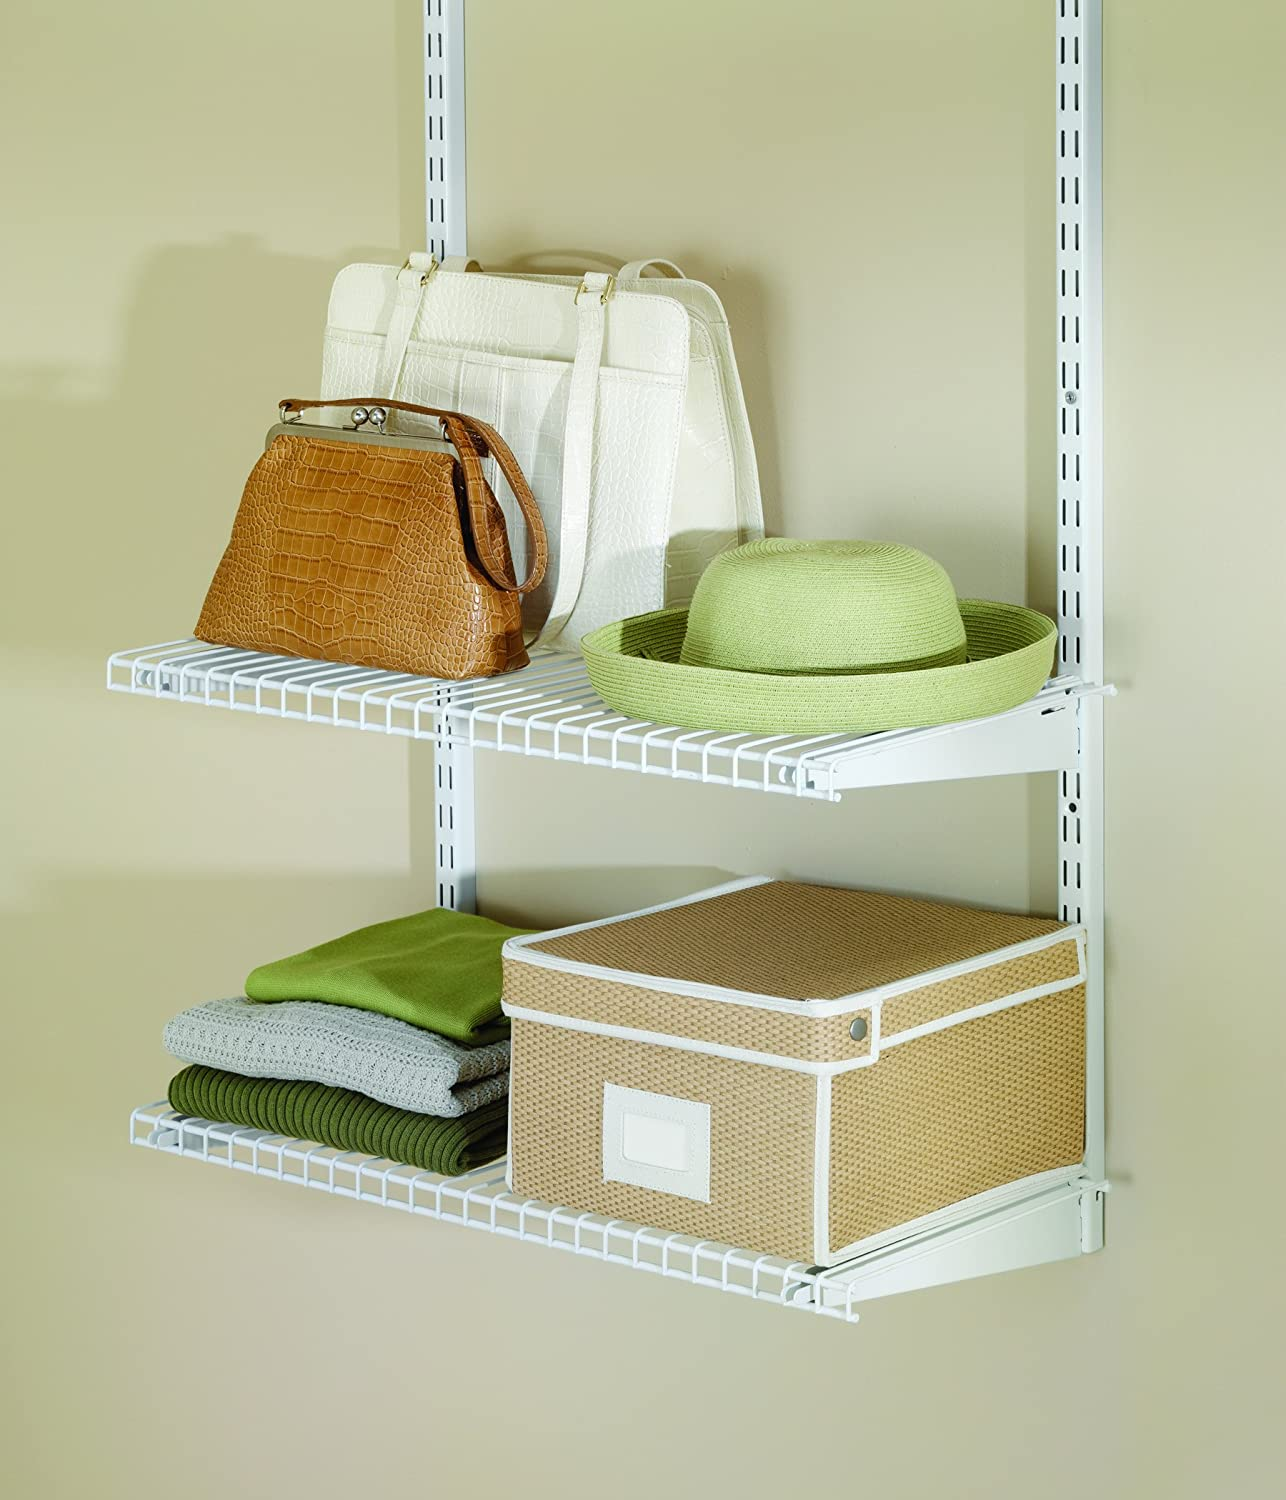 rubbermaid configurations custom closet add on shelving kit white 26 fg3h910 ebay. Black Bedroom Furniture Sets. Home Design Ideas